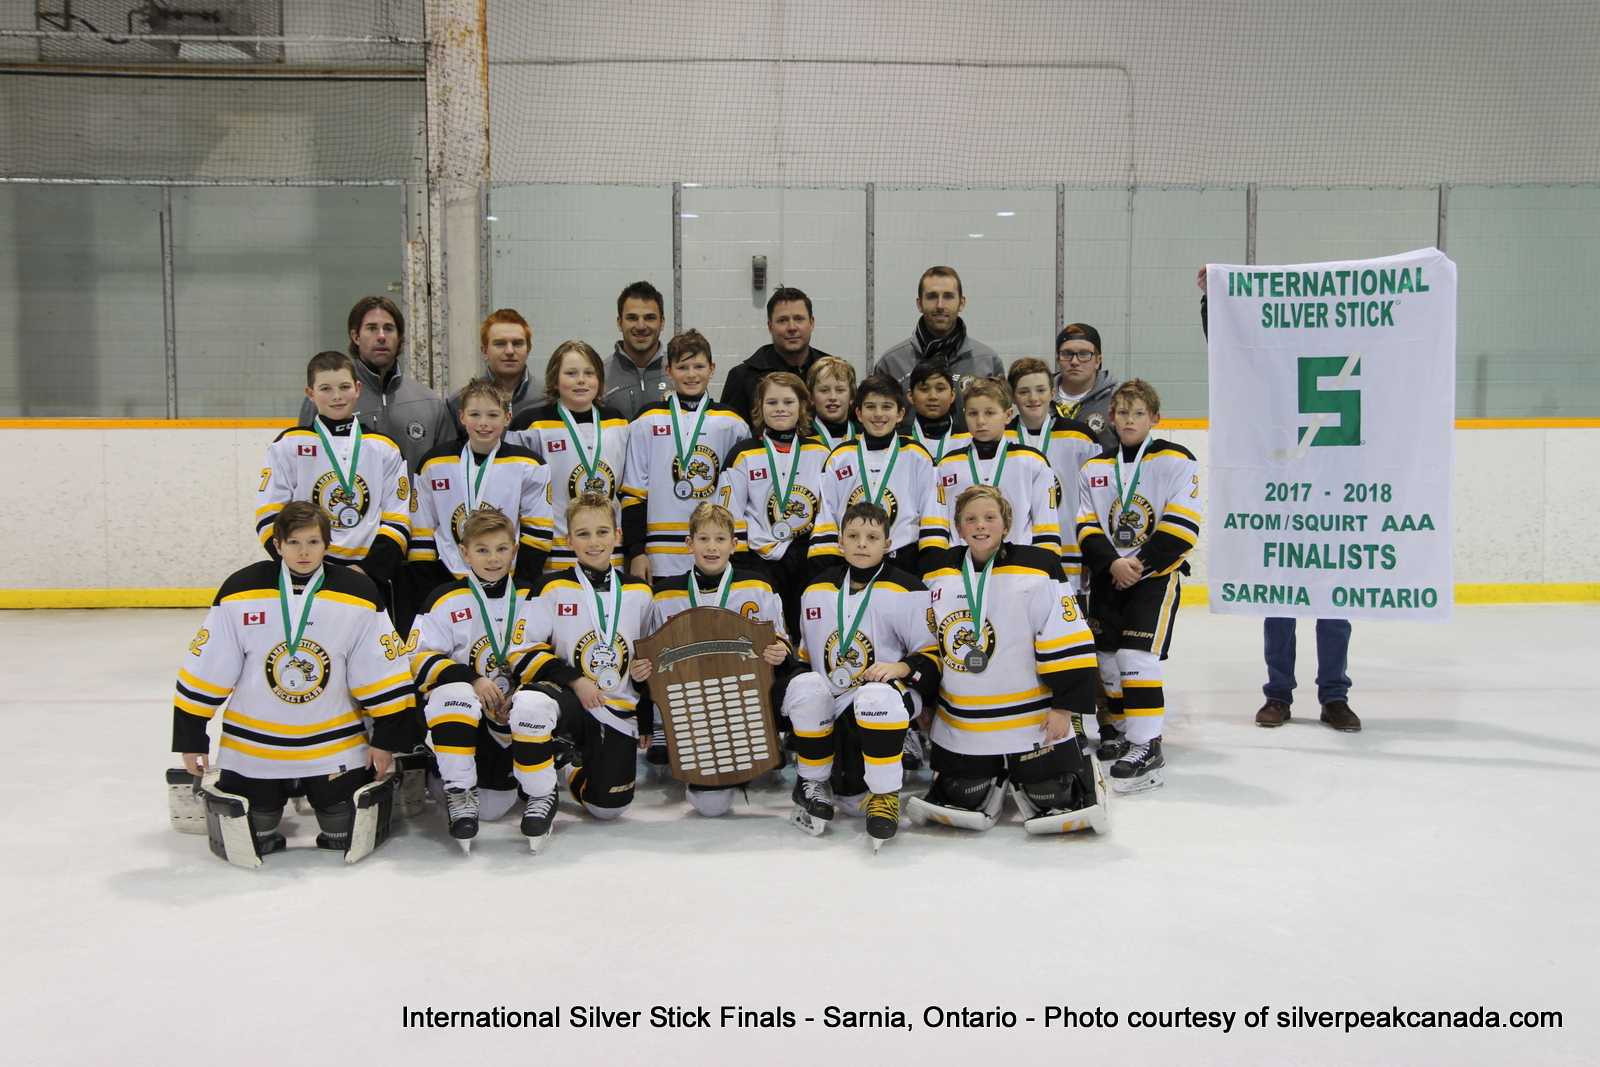 Silver Stick Finals Photos Sarnia SilverPeak Studios Action Photography Atom AAA Finalists